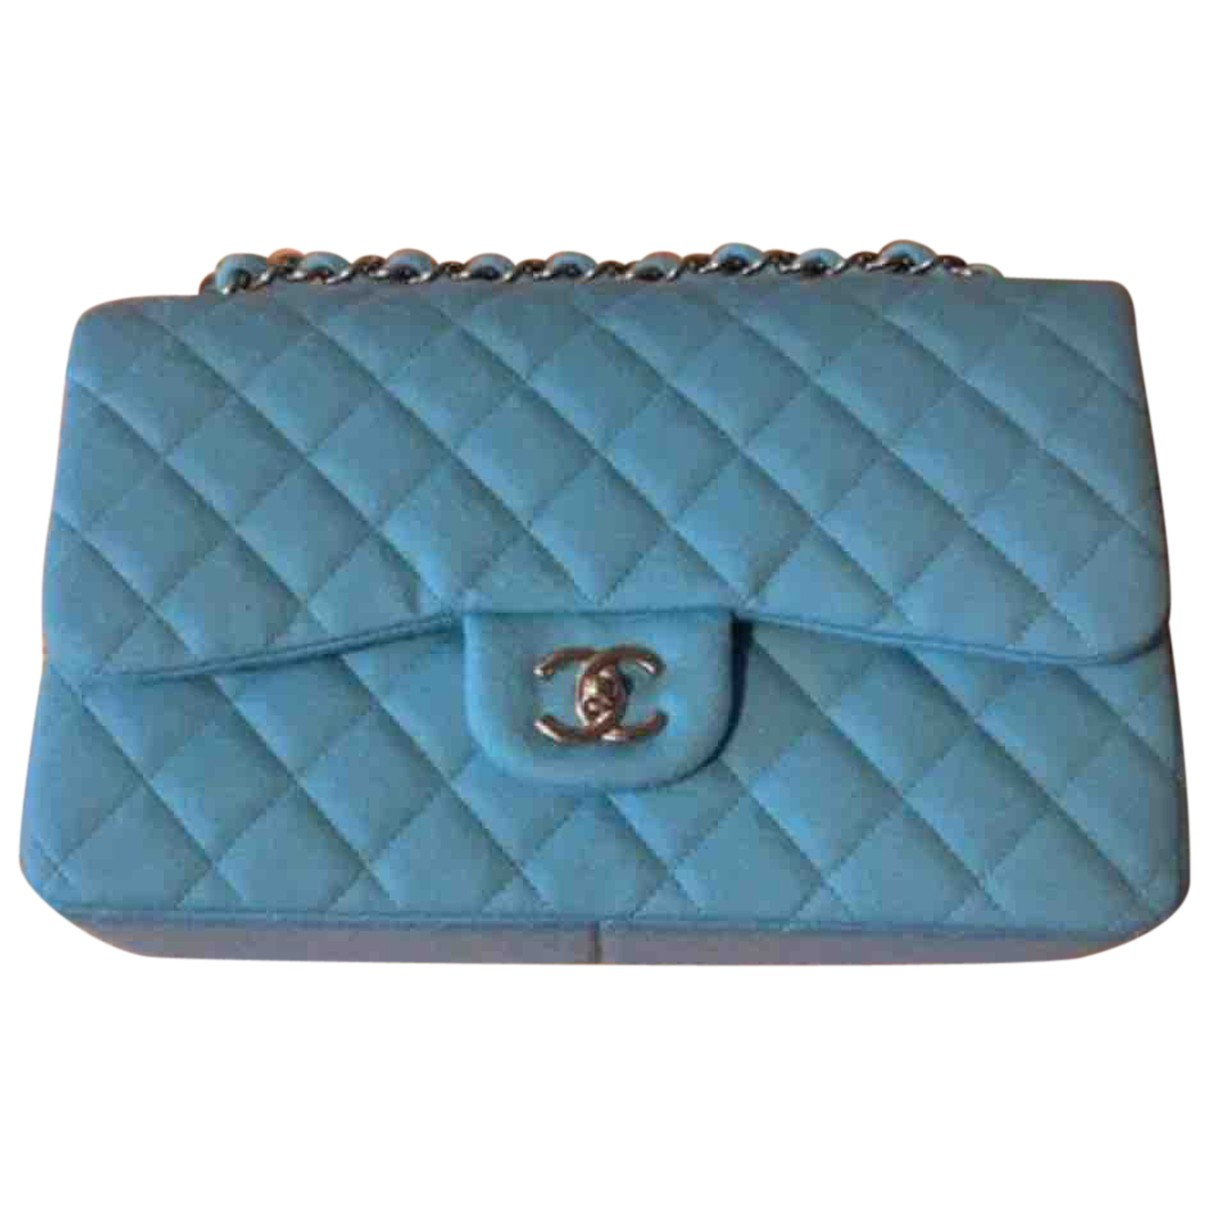 Chanel Timeless/Classique Blue Wool handbag for Women N